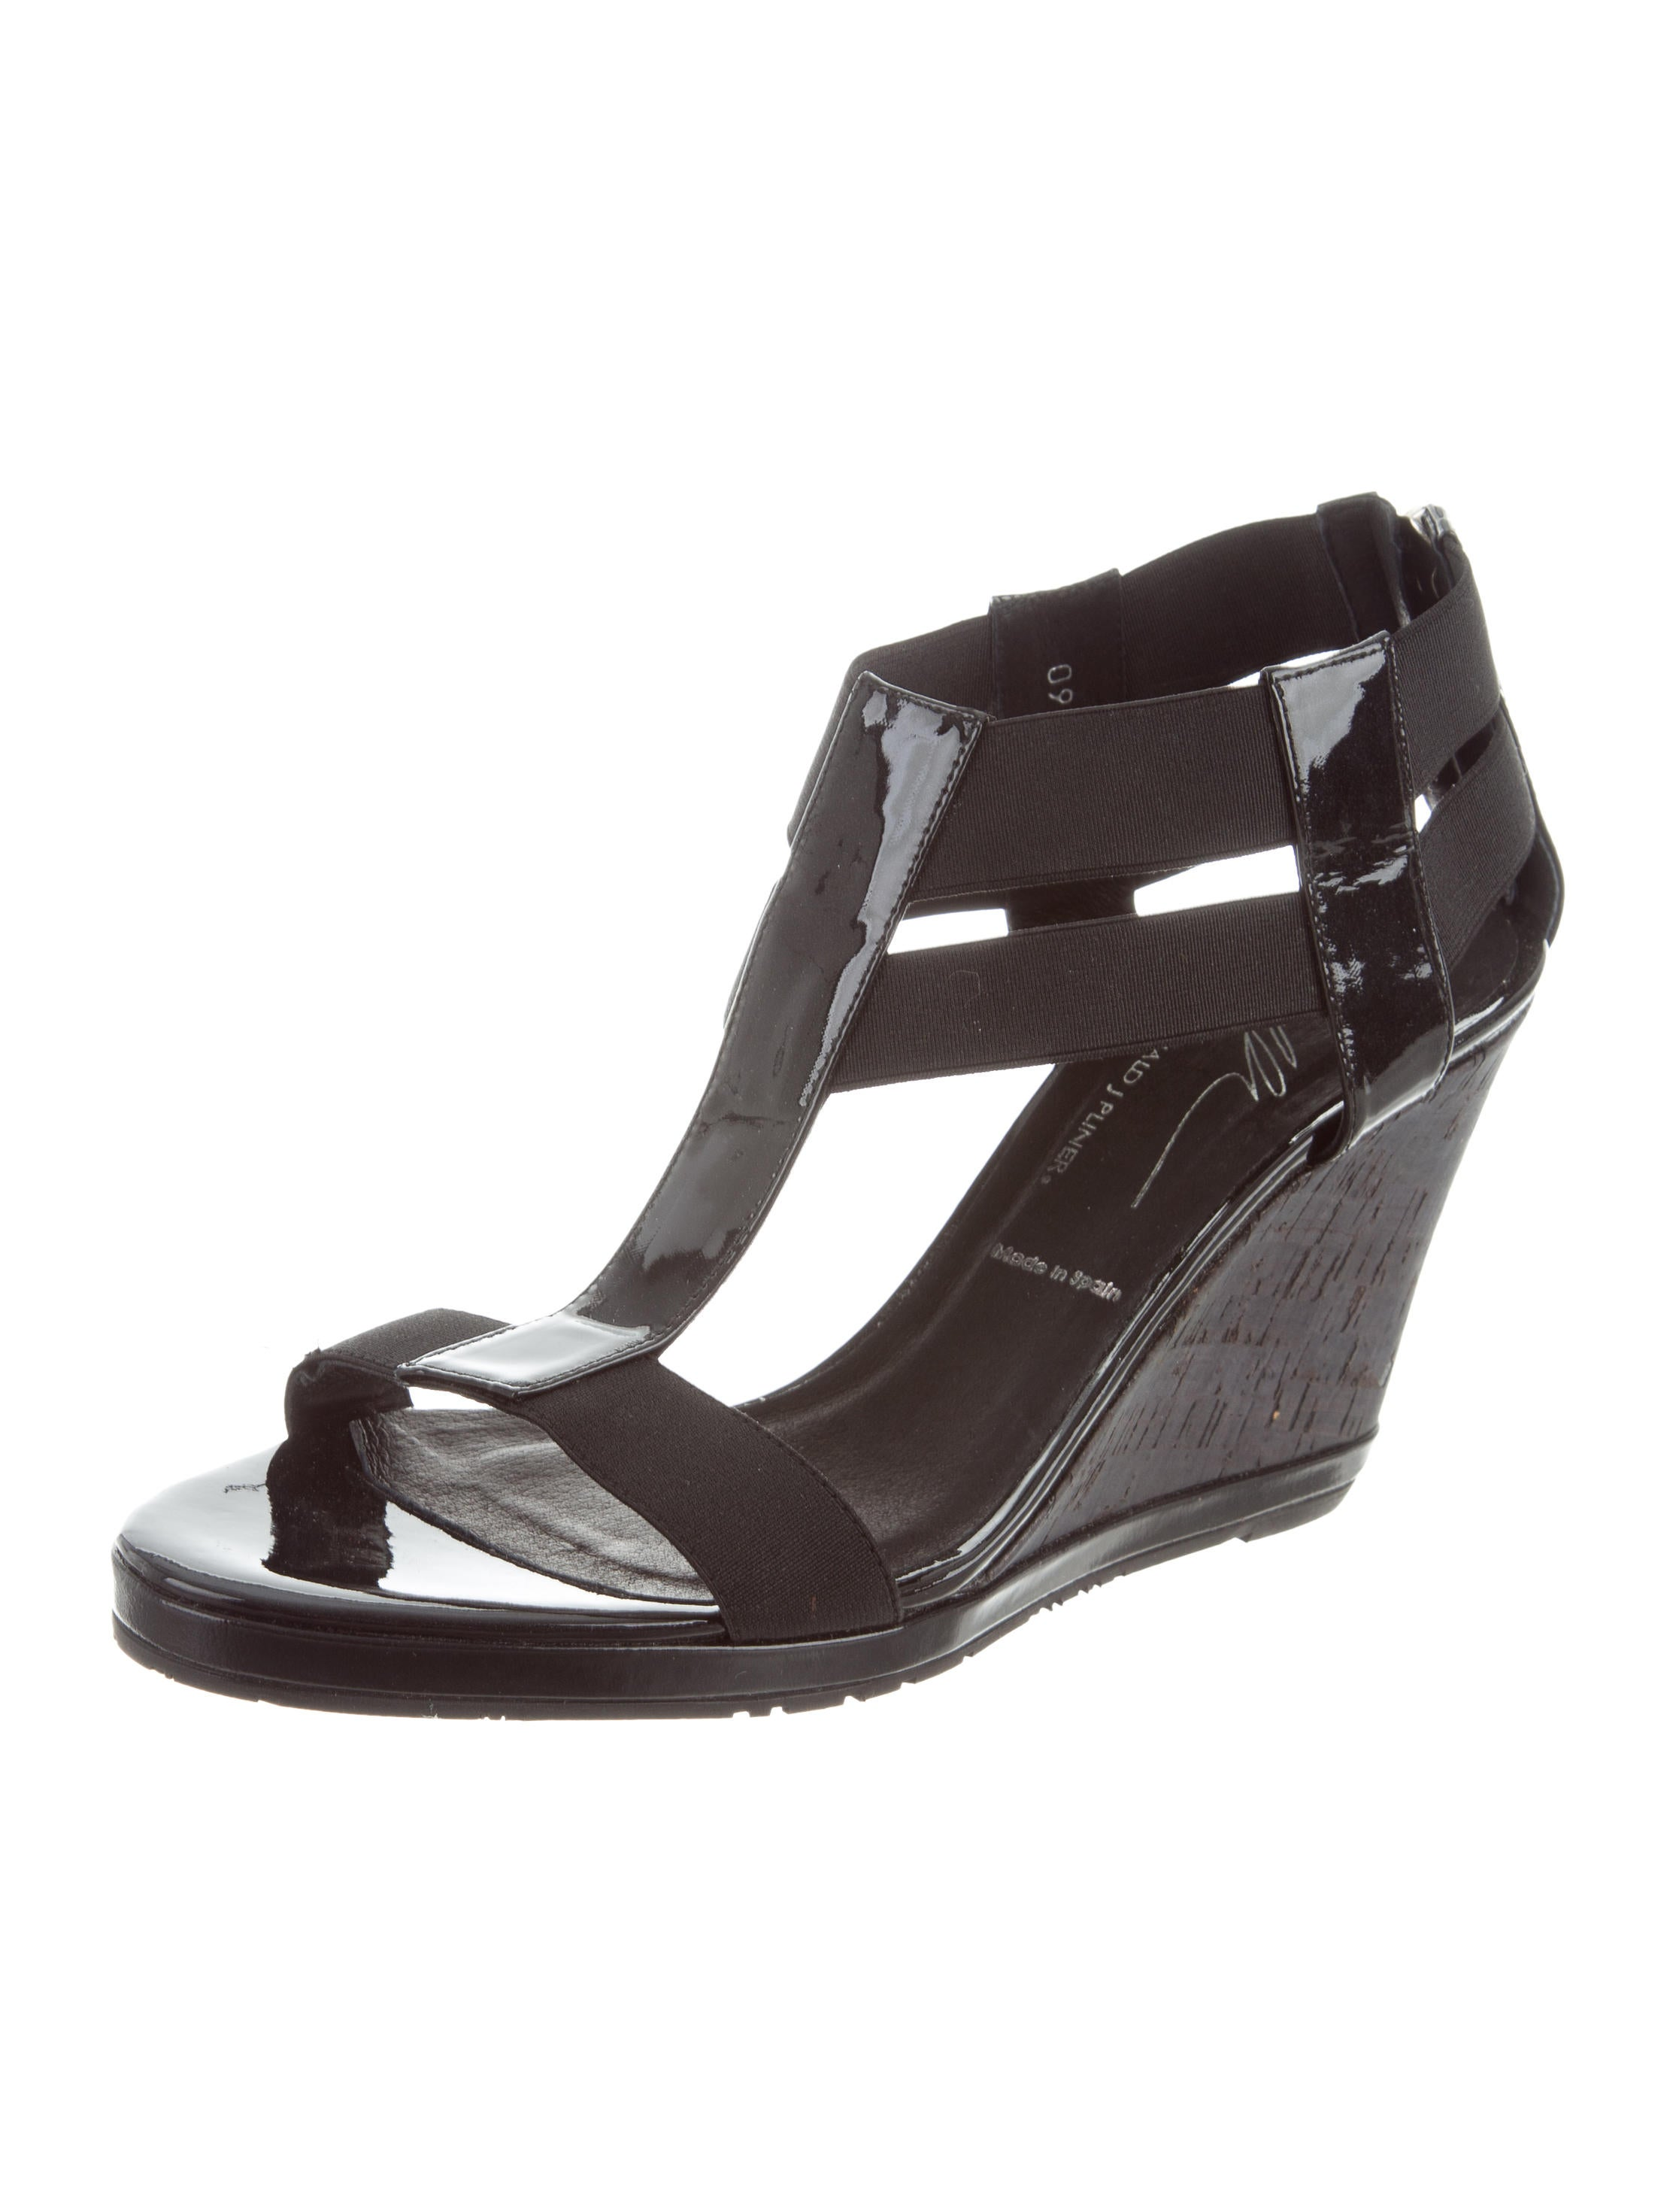 Donald J Pliner Grosgrain Patent Leather-Trimmed Wedges how much sale online yjde4bl